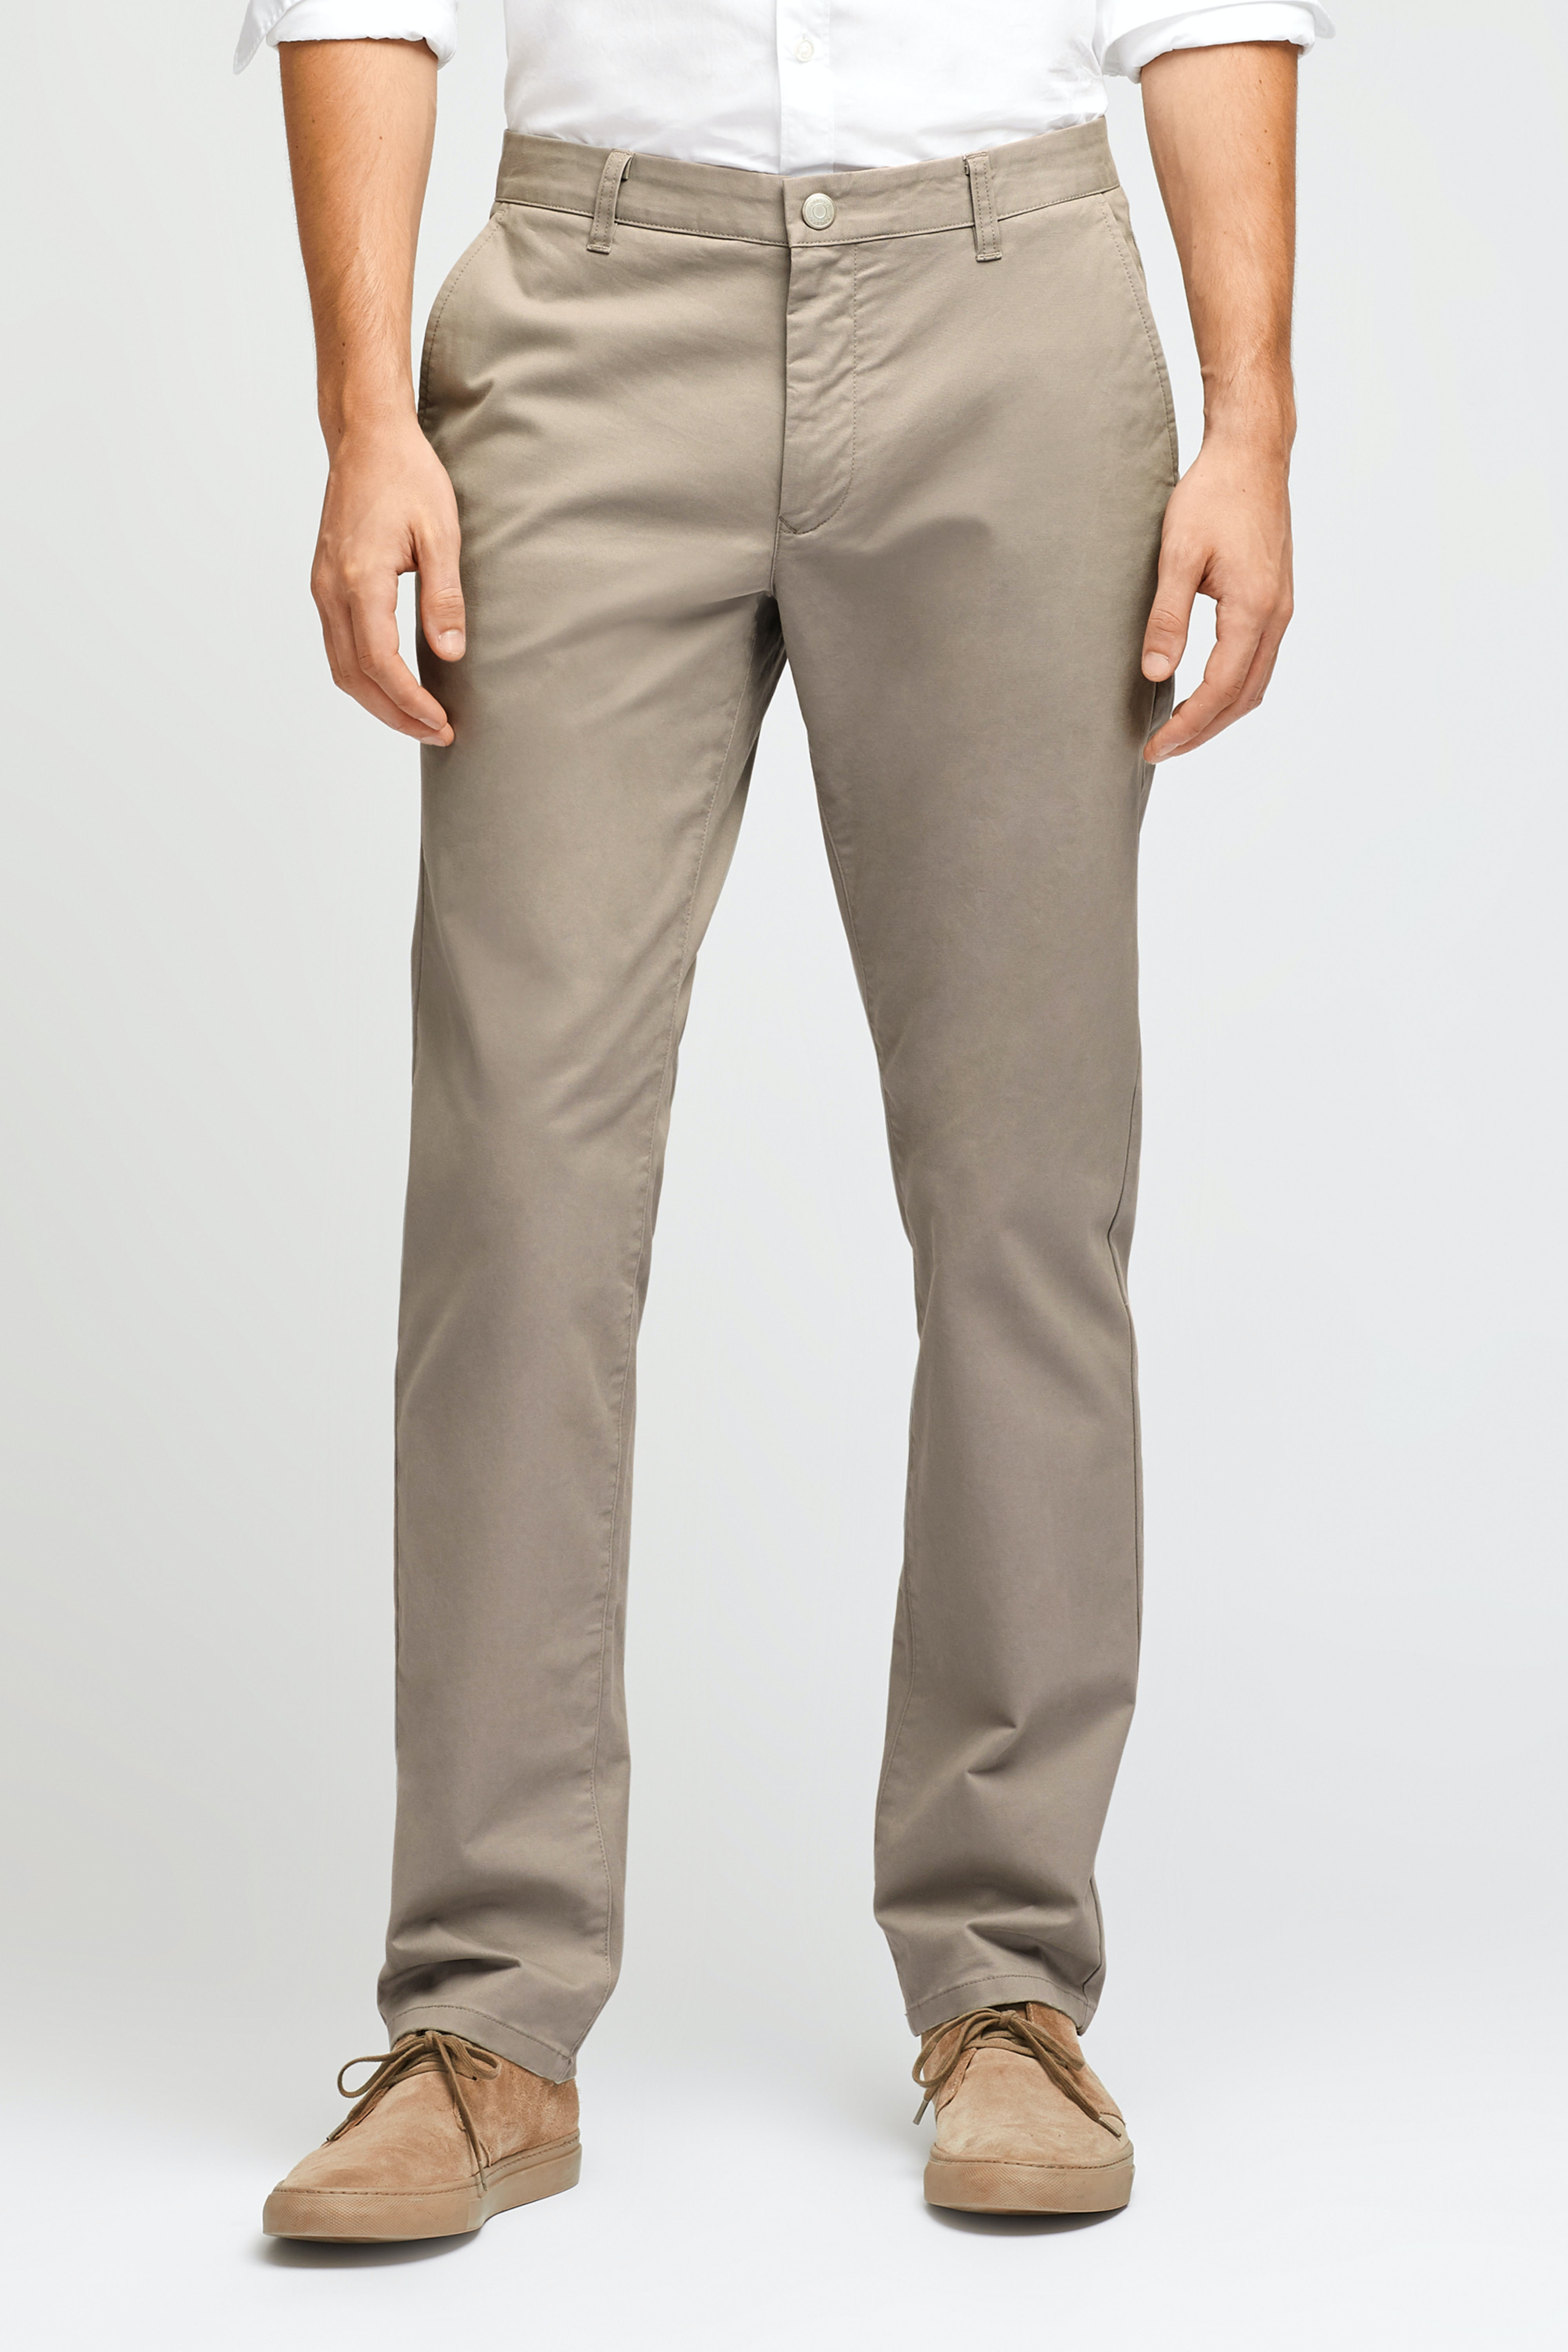 Stretch Washed Chinos - Relaxed Fit